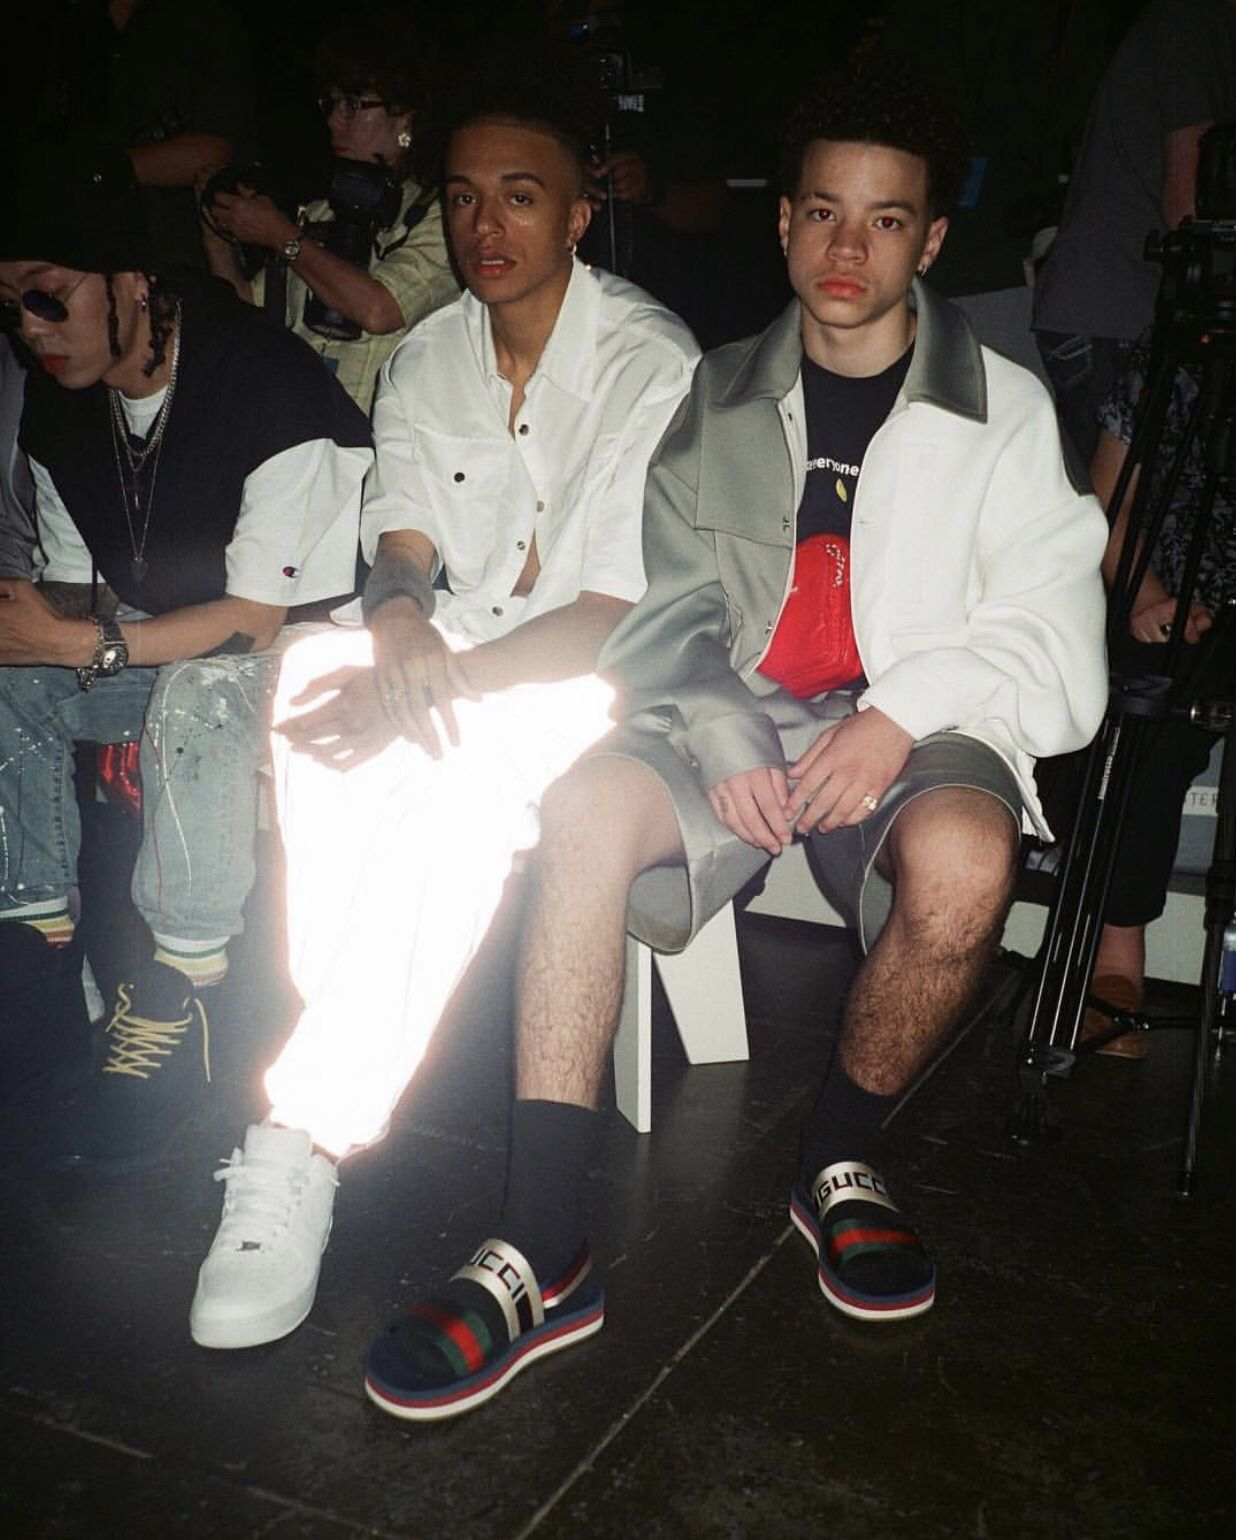 Pin By Mixed Curlz On Lil Mosey Cute Rappers Mosey Rappers